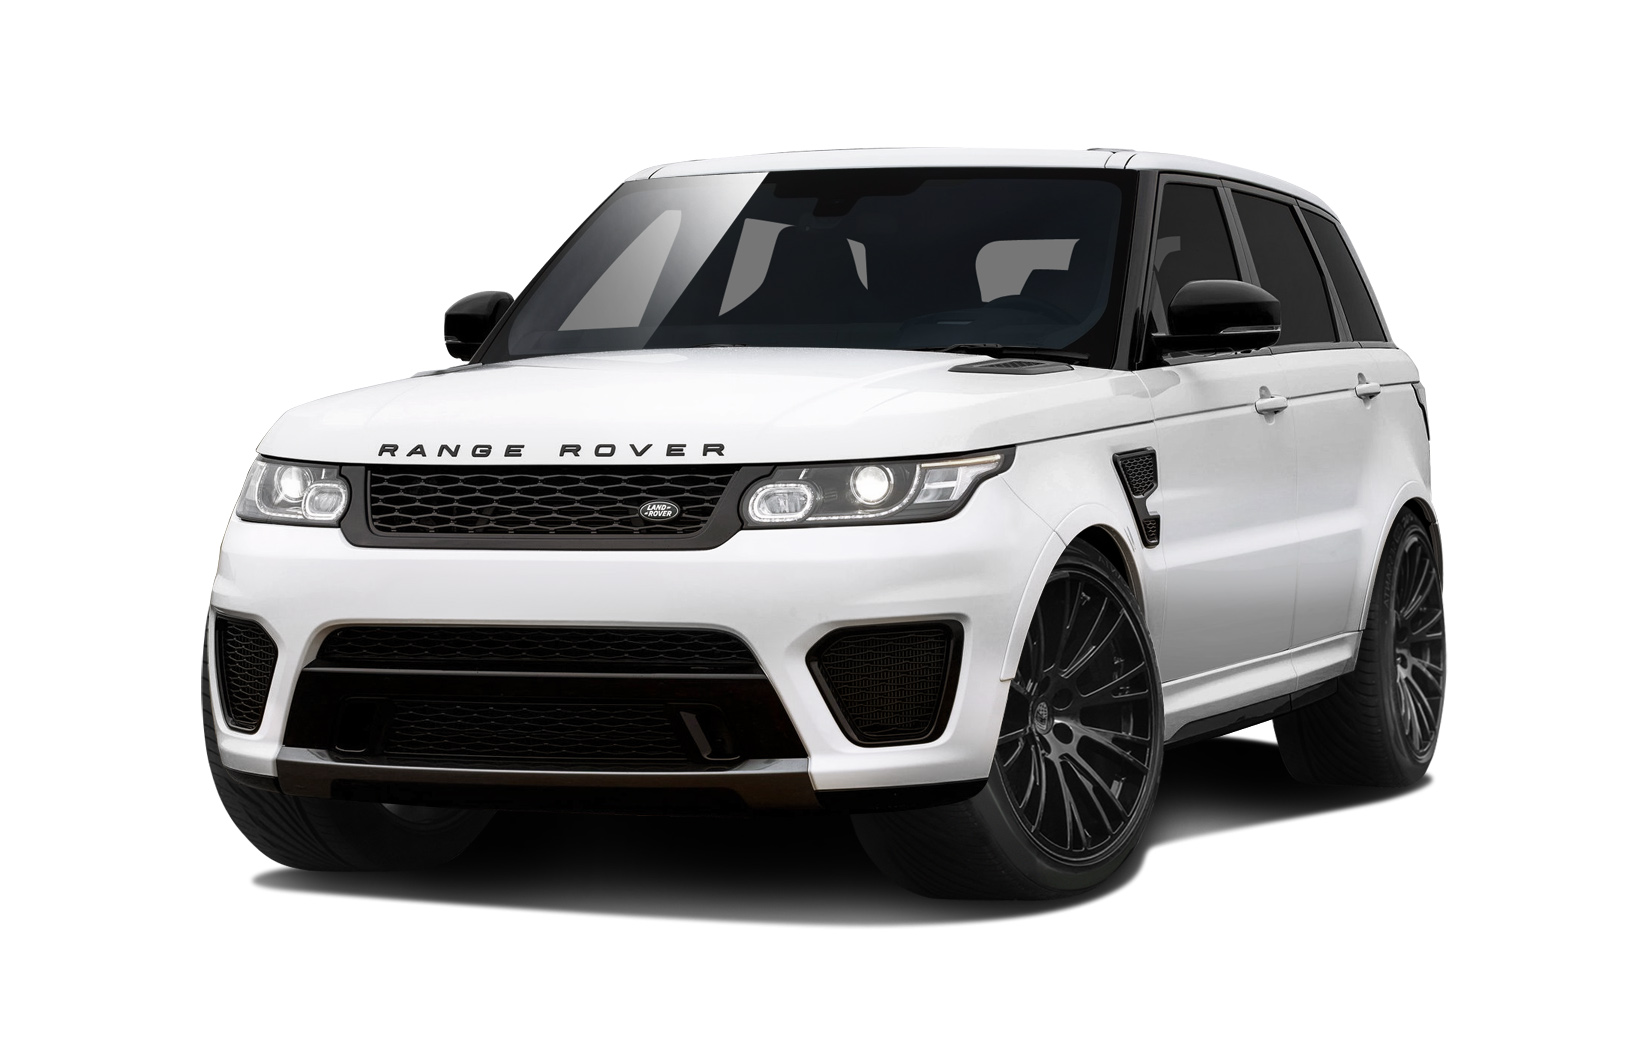 welcome to extreme dimensions item group 2014 2015 land rover range rover sport vaero svr. Black Bedroom Furniture Sets. Home Design Ideas